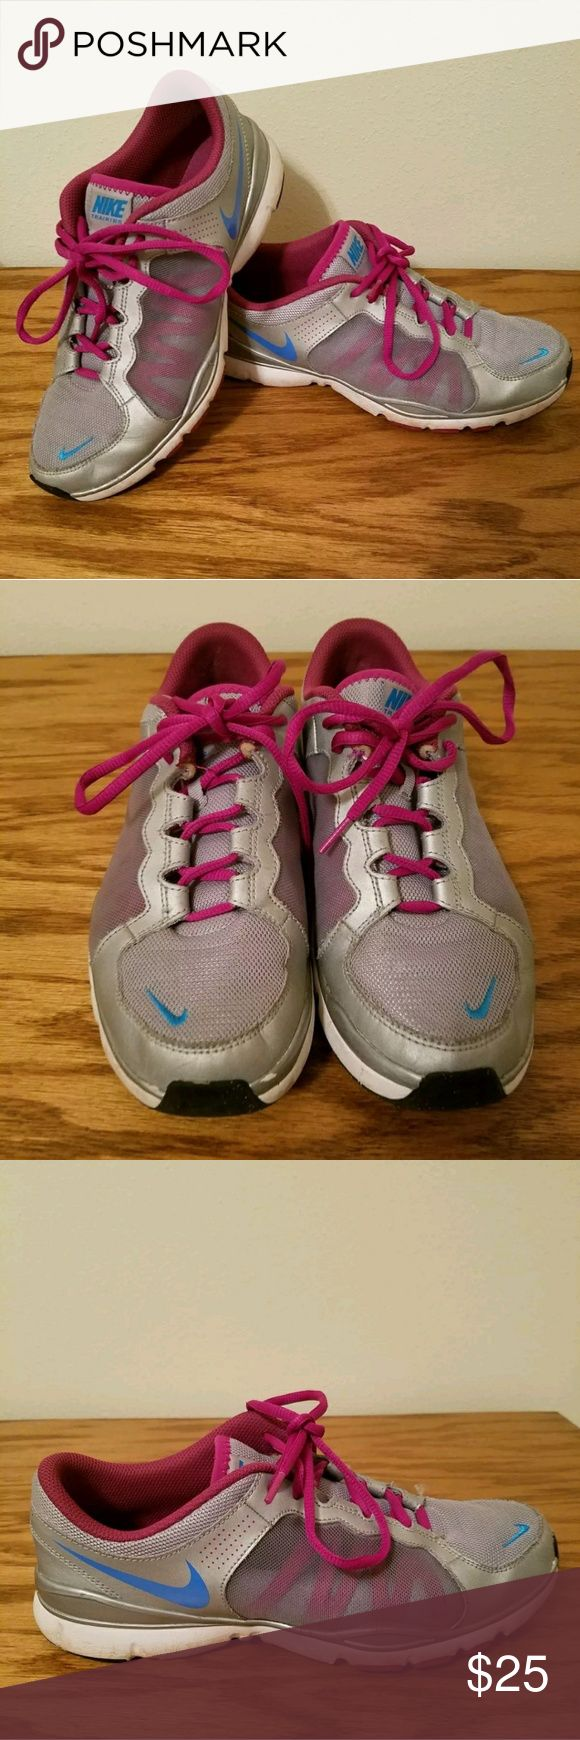 🔥MAKE OFFER🔥 Nike Training Flex TR2 Running Shoe Nike Training Flex TR2 Women's Shoes Size: 9.5  These are in GREAT shape! (See pictures)Very lightly used Great price Message me with any questions!  Thank you for looking! Please see the rest of my cool items! Nike Shoes Athletic Shoes